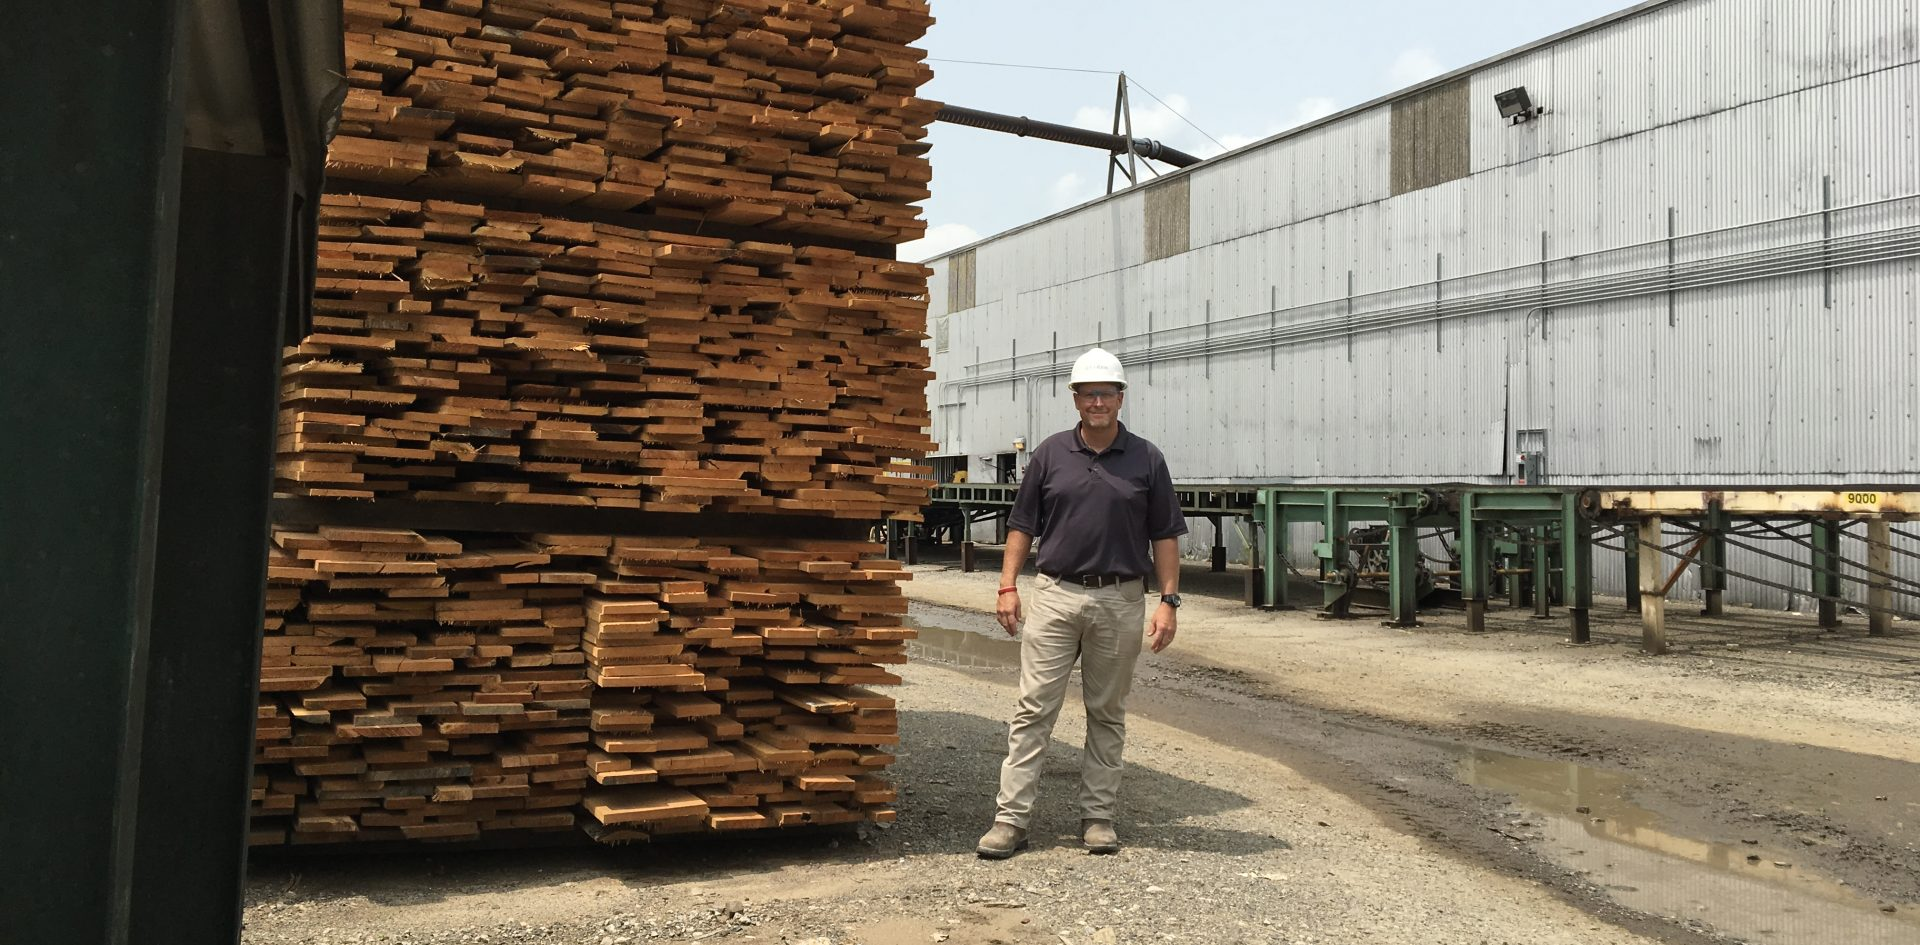 Bo Hammond is hardwood sales manager for Collins Hardwood, a company based in Oregon with locations in Pennsylvania, West Virginia and California. He and others in the industry say they're feeling the effects of the United States' trade war with China